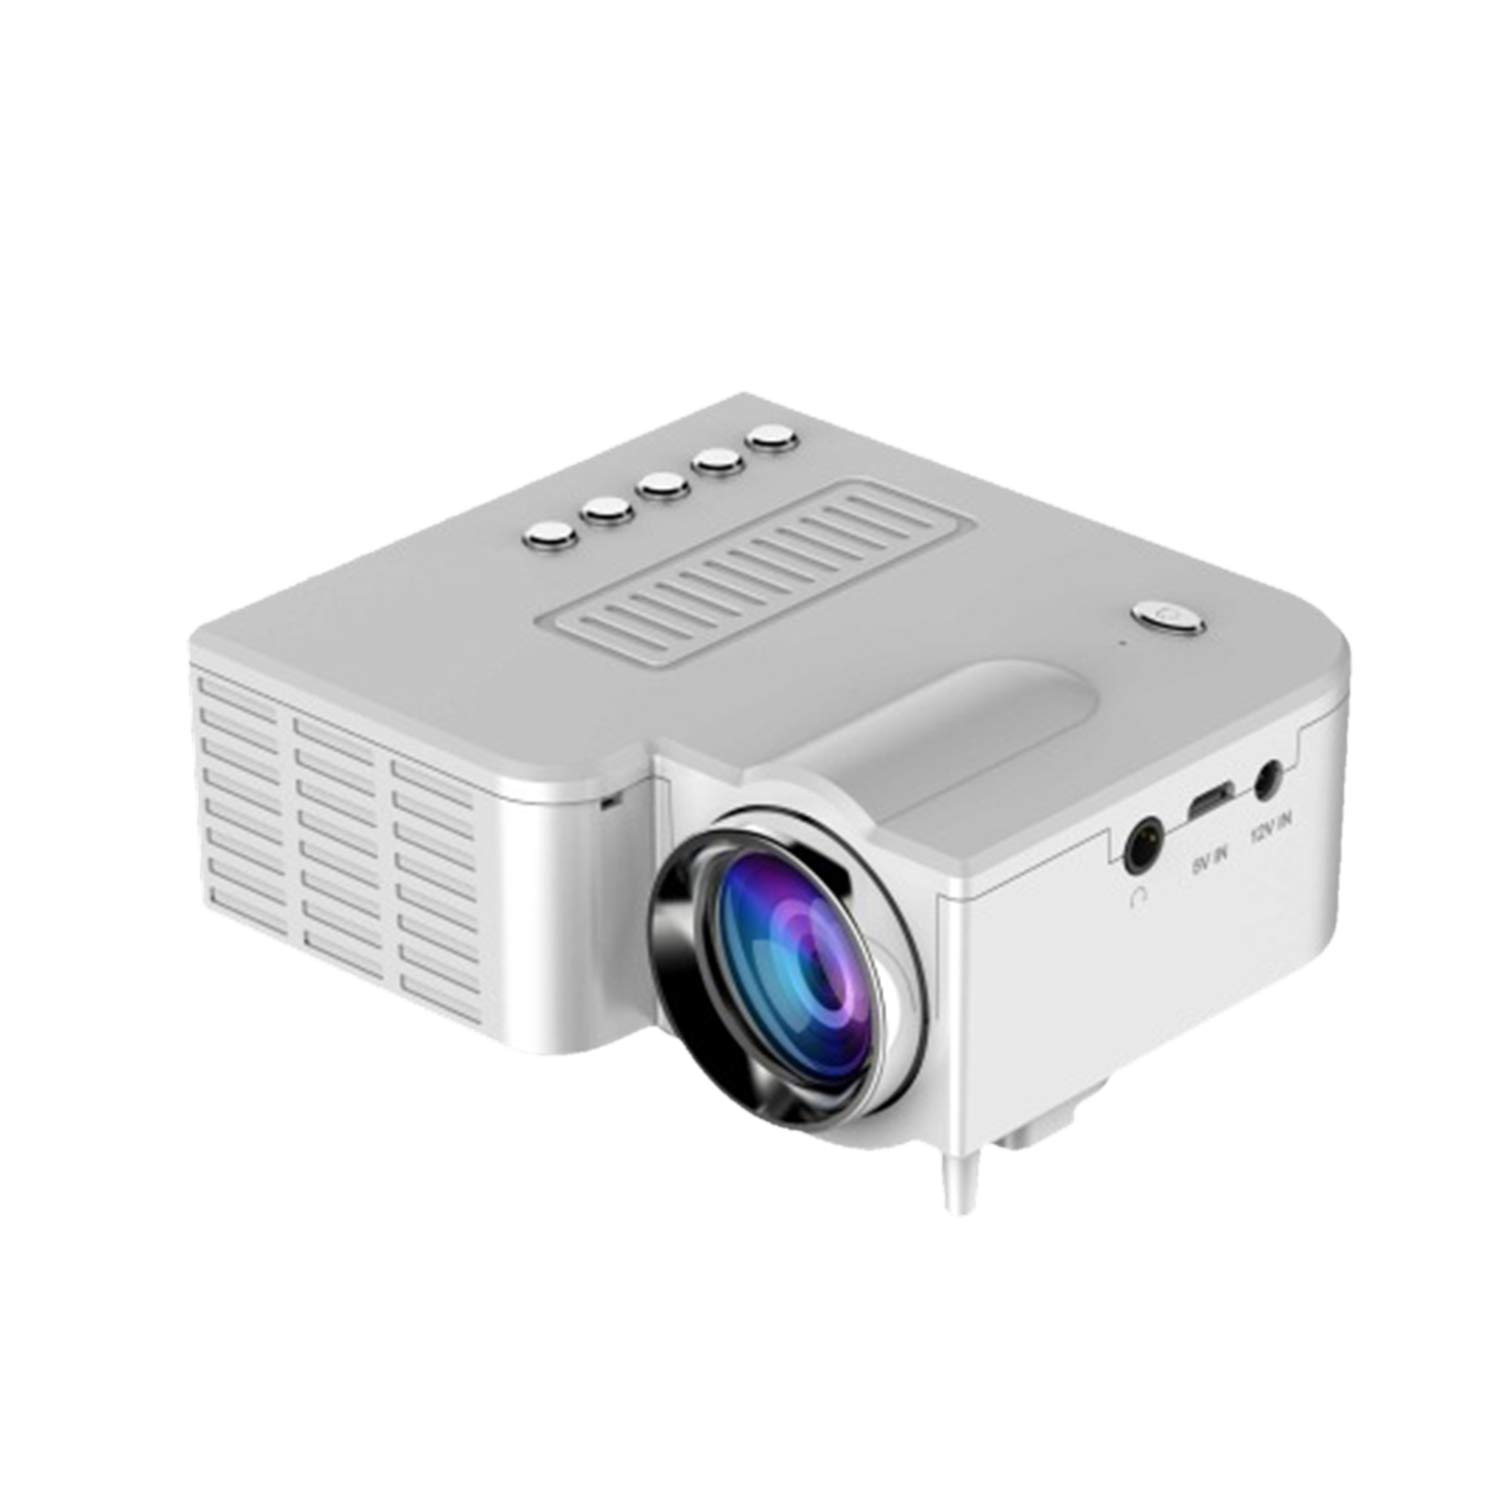 Peppydazi UC28B Portable HD 1080P Mini LED Projector with USB TV AV for Home Office Cinema Theater Entertainment Multimedia by Peppydazi